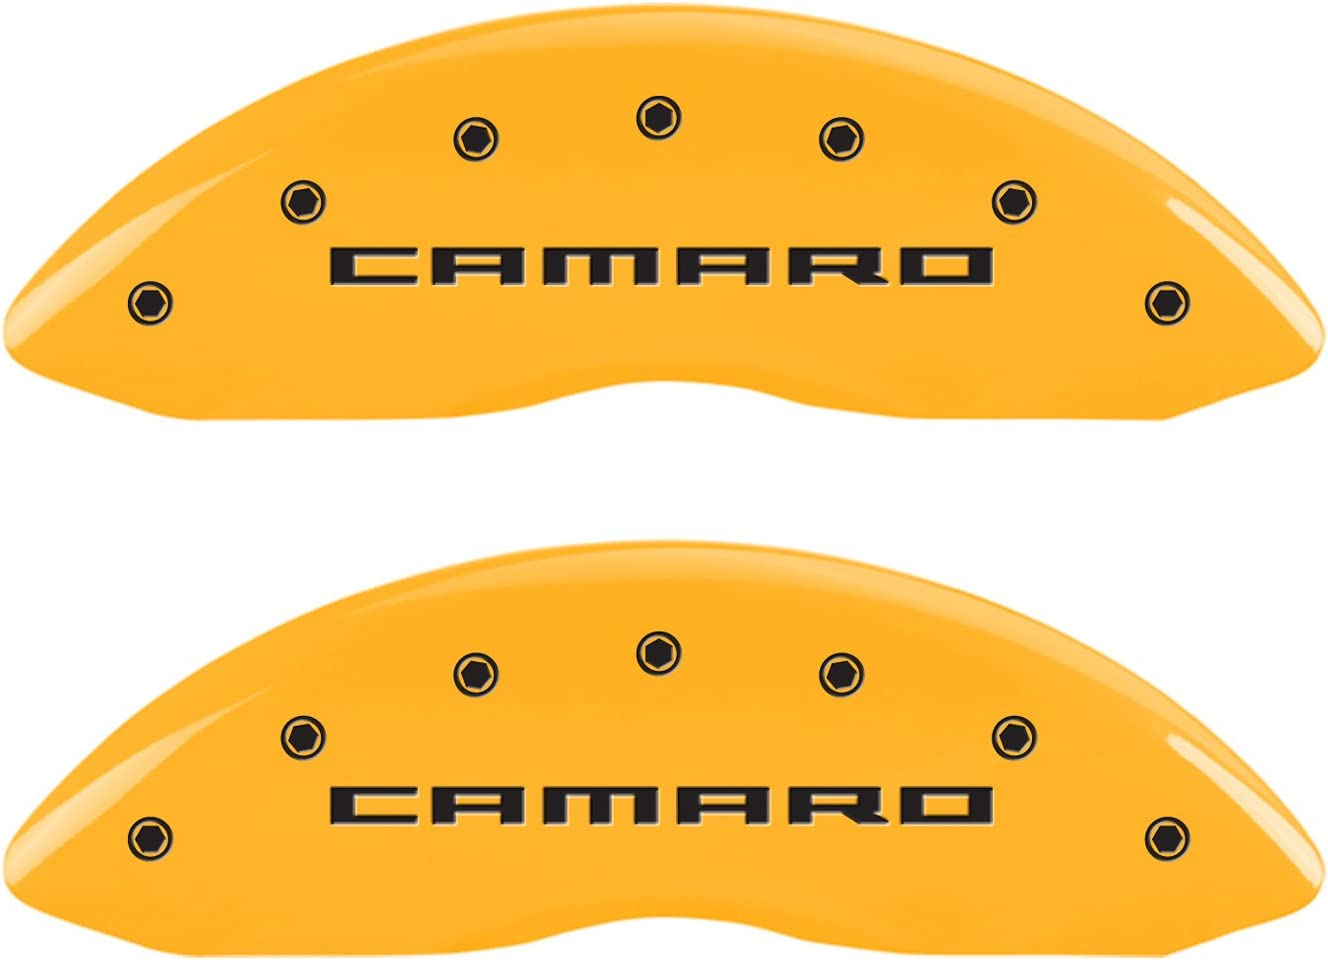 MGP Caliper Covers 14033SCA5RD 2010-2015 Chevrolet Camaro LT//LS Caliper Cover with Camaro Engraving and Red Powder Coat Finish, Set of 4